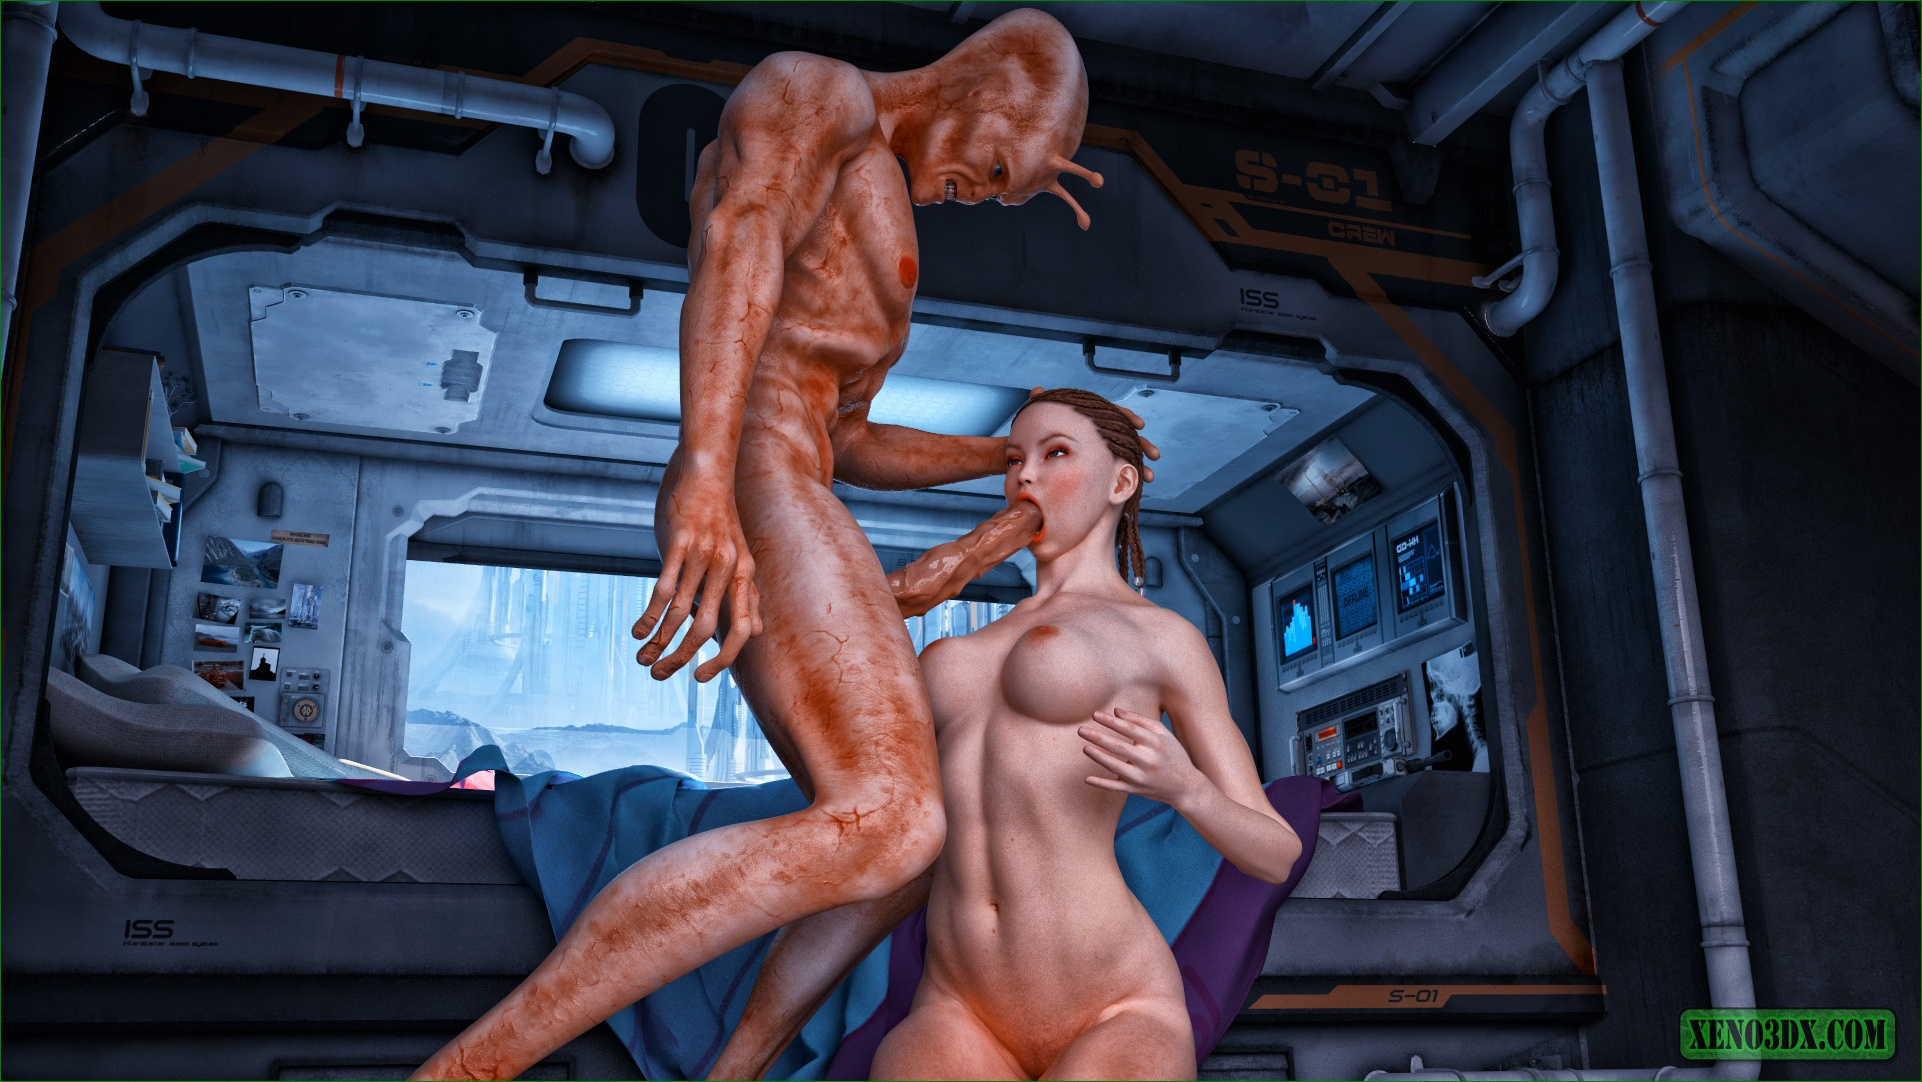 Alien monster porn movies exploited photos